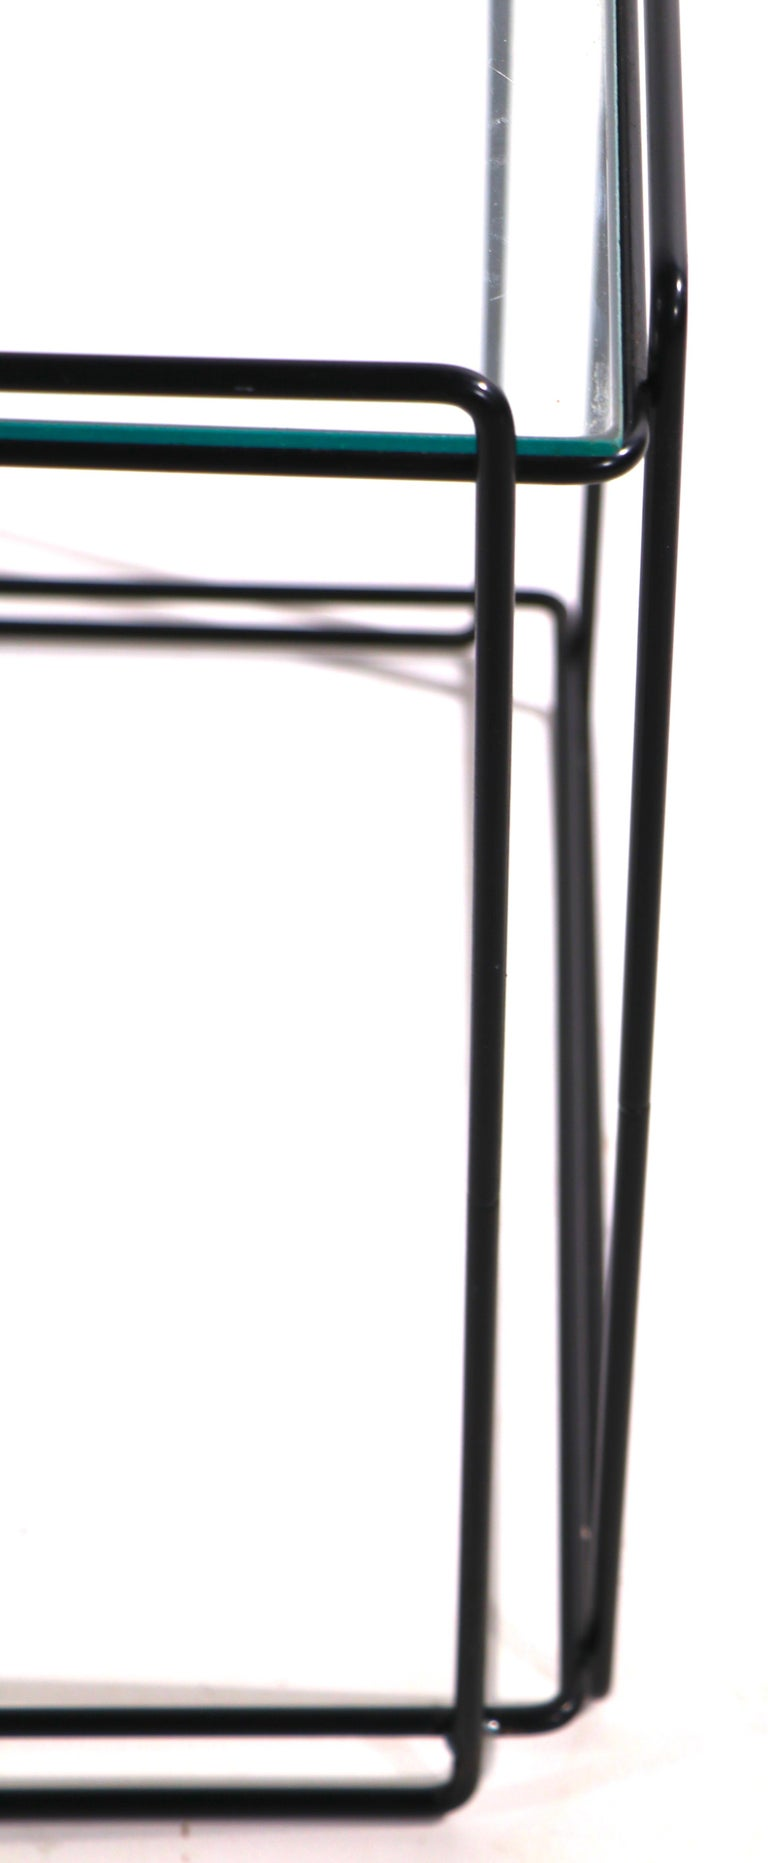 Isoceles Metal and Glass Table by Max Sauze for Attro France  For Sale 2